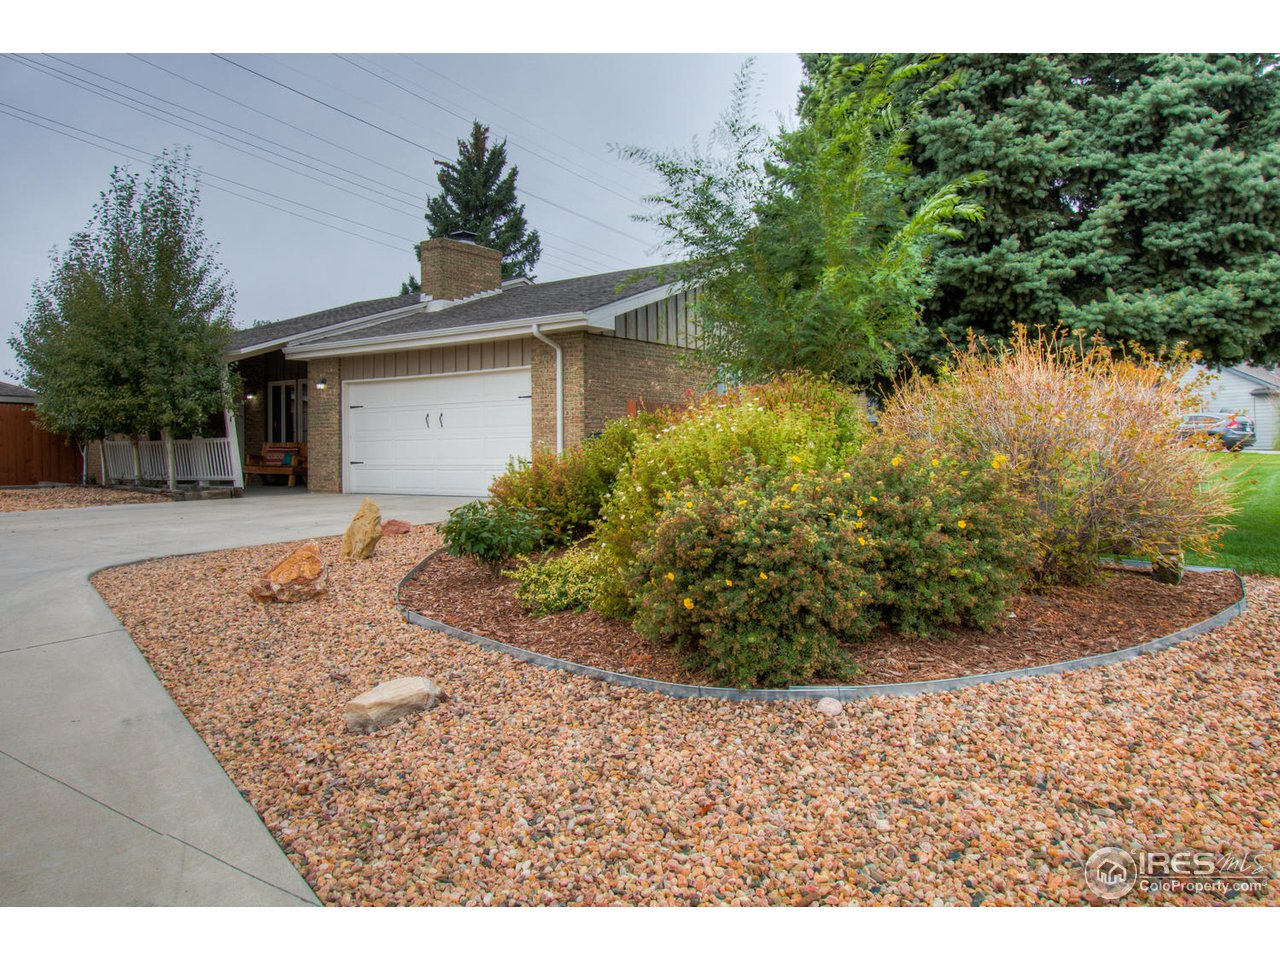 NEW PRICE! Watch a video tour: http://bit.ly/2Qq91B1. Walk into this wide open ranch floorplan & experience a hearkening to intentional architecture. With real wood fireplace & exposed support beams in the lg great room, this recently renovated home has granite counters, wood floor, updated paint colors & new appliances. The outdoors welcome you with new decks, pergola, thoughtful new landscaping & large mature trees. Windsor schools & commutable location make this a show stopper; see it today.